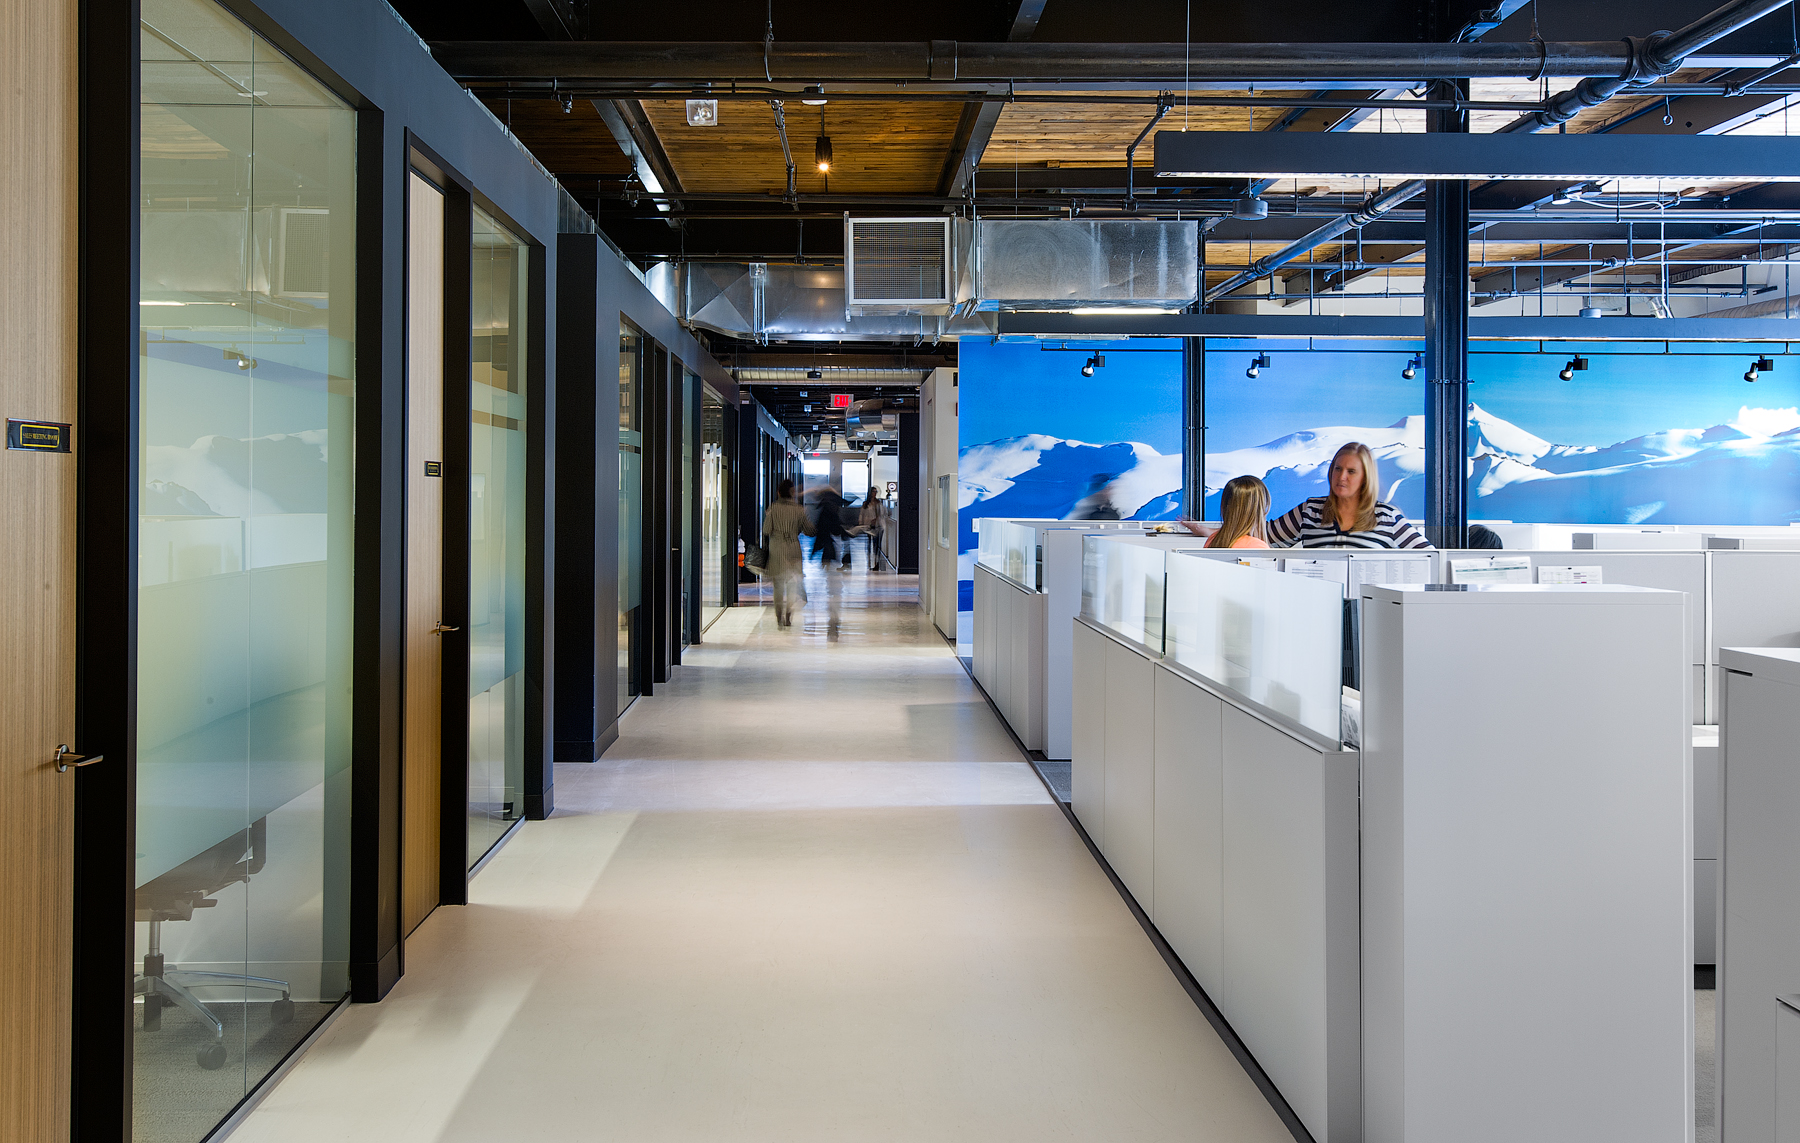 Canada Goose hallway with workstations on right and meeting rooms on left, and wall featuring mountain view mural